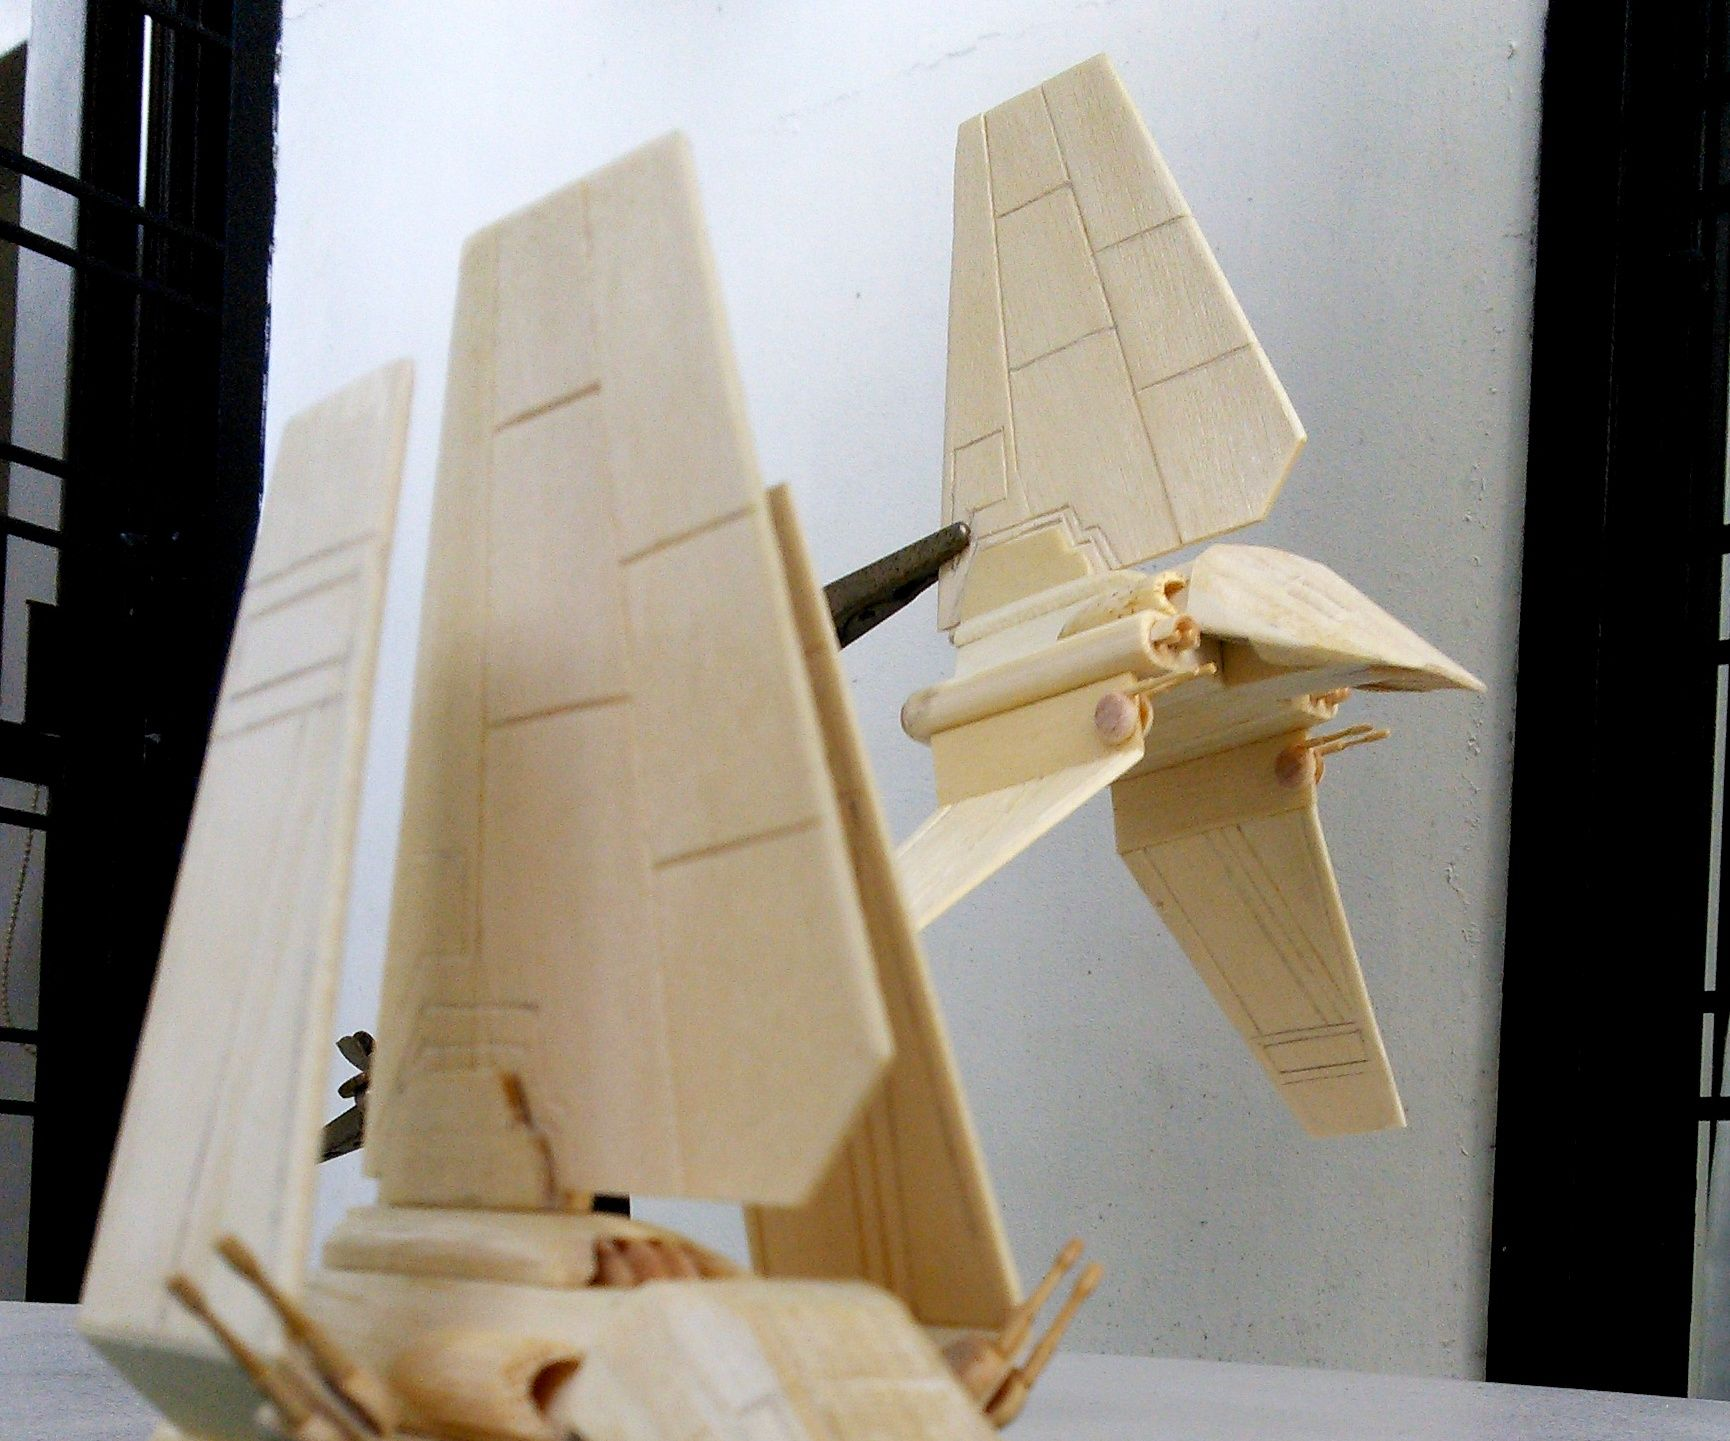 (Not so) Mini Lambda-Class Imperial Shuttle Popsicle Stick Model